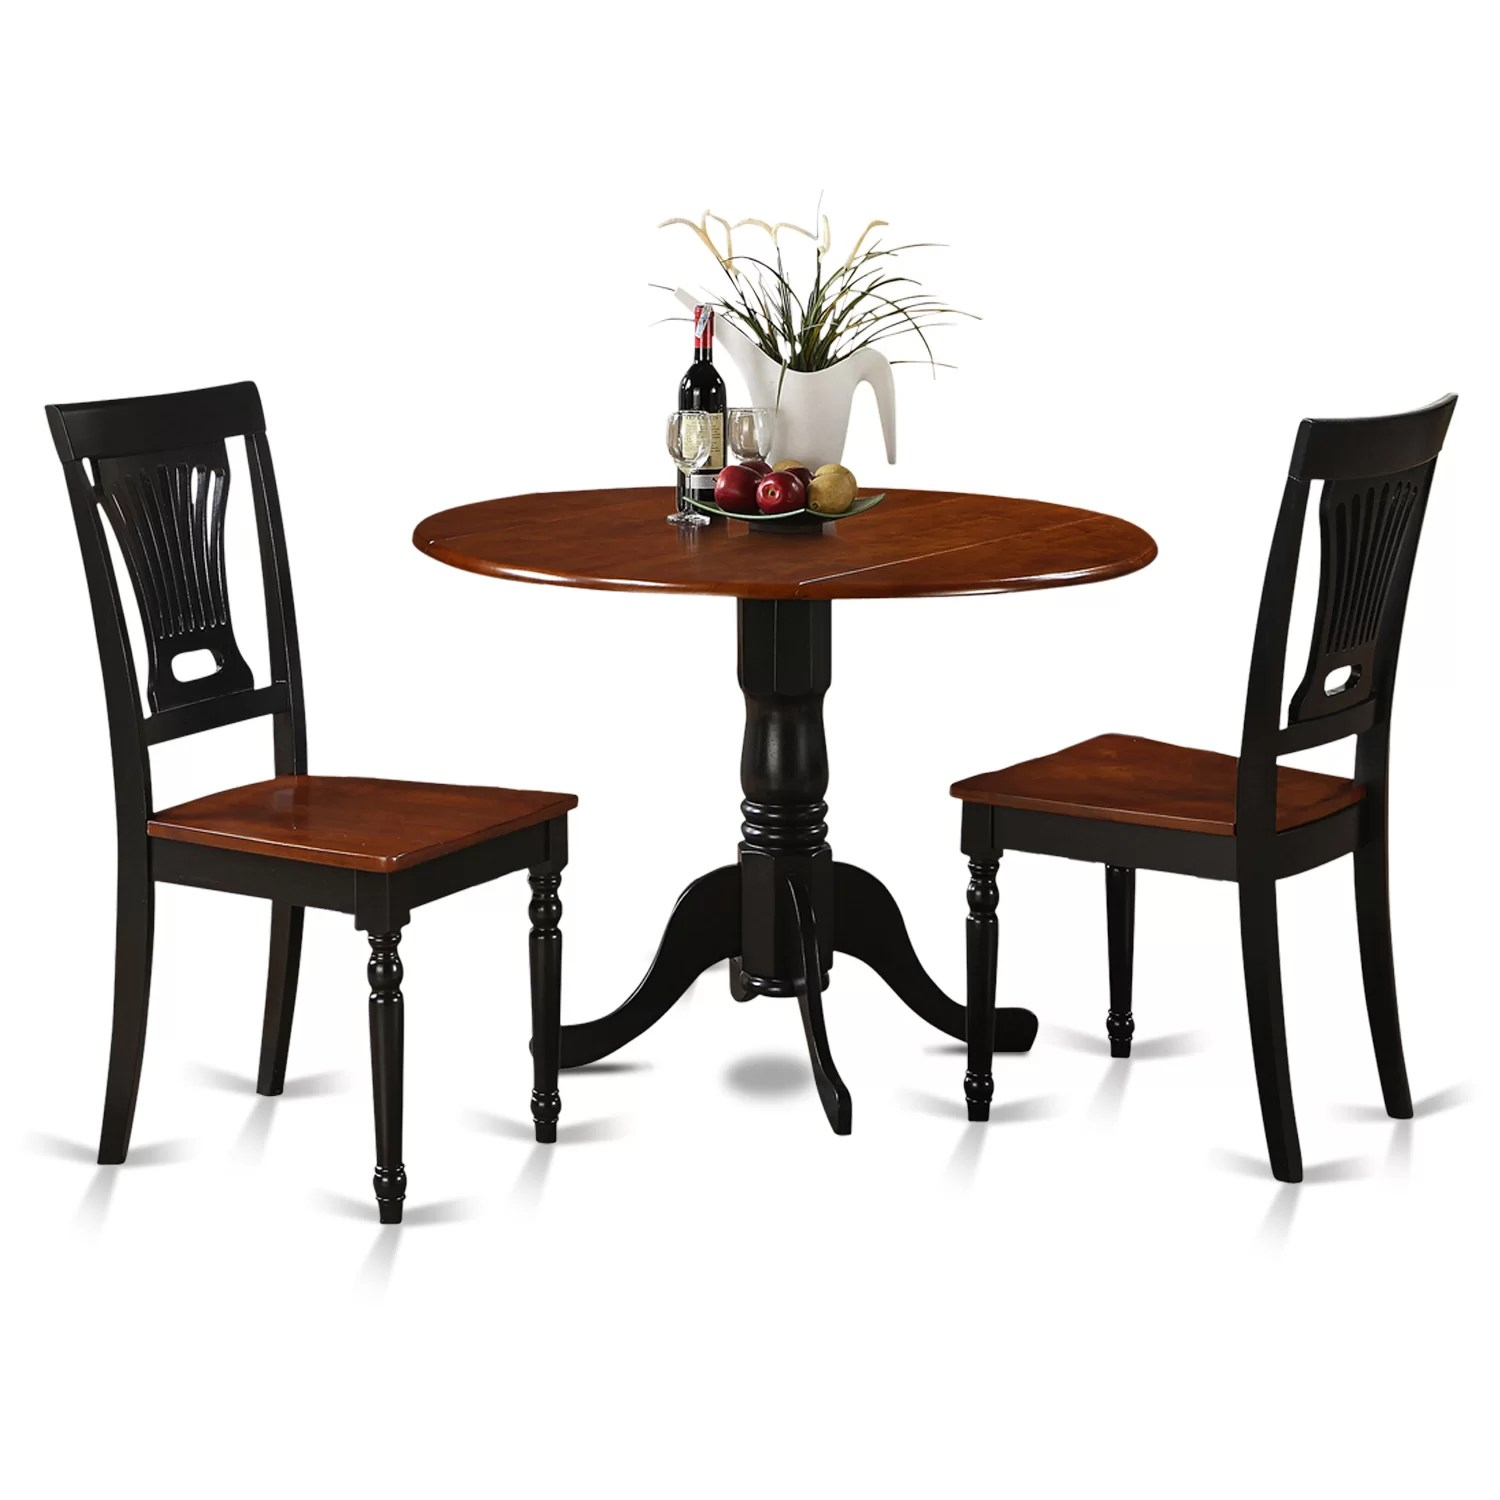 Roundabout Chair Wooden Importers Dublin 3 Piece Dining Set And Reviews Wayfair